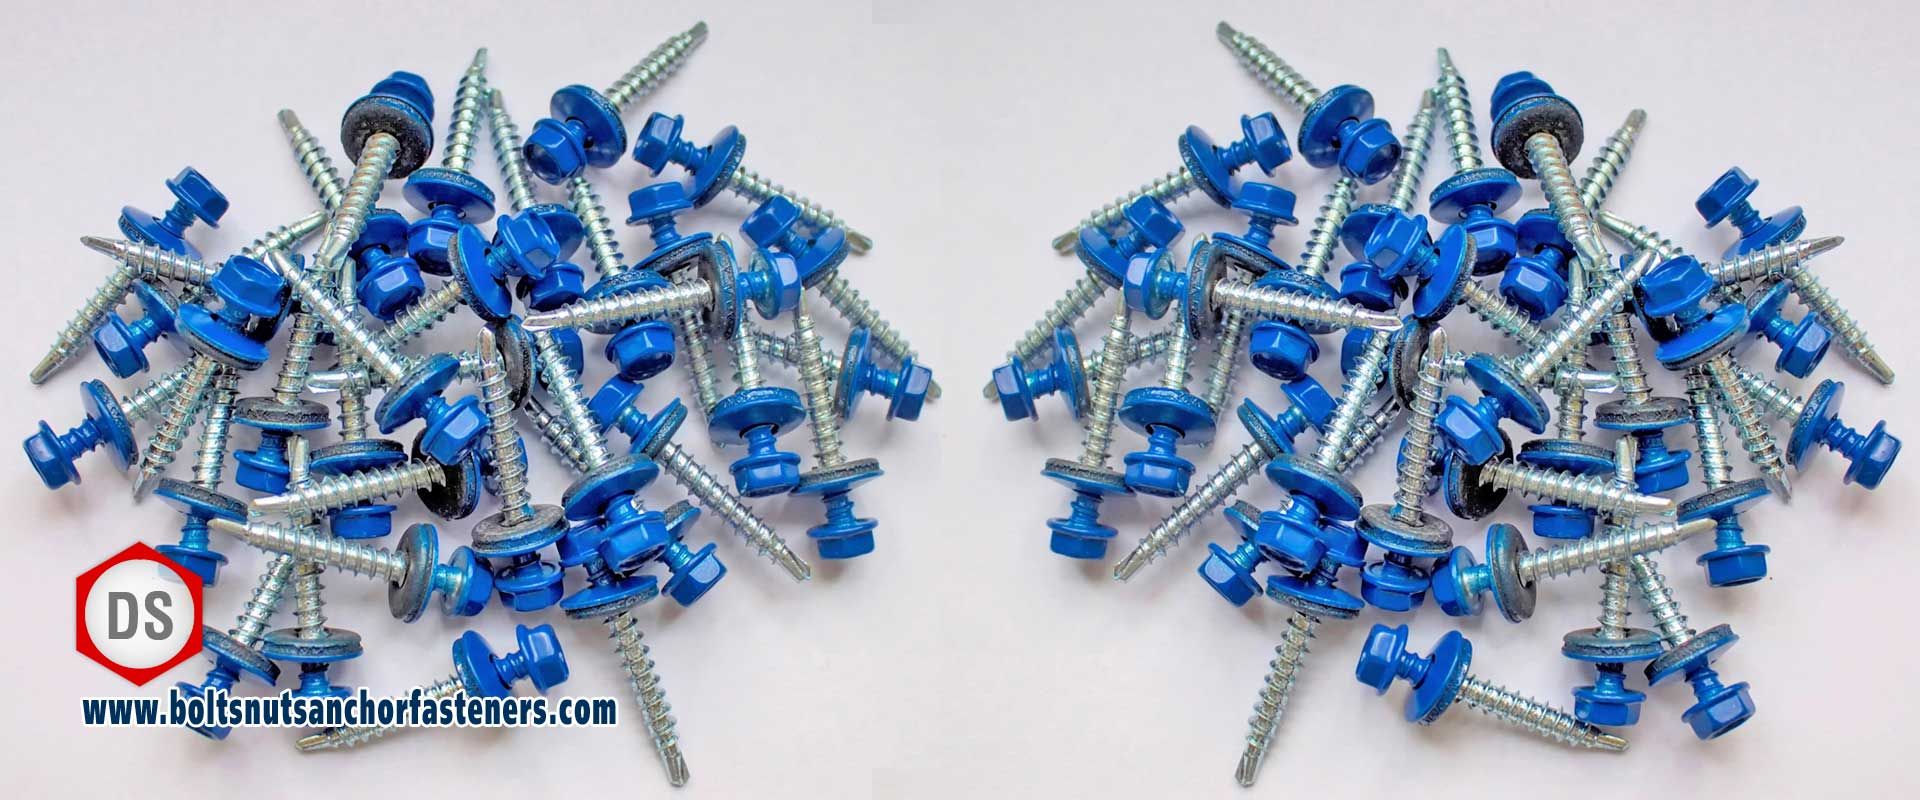 MS Screw Manufacturer